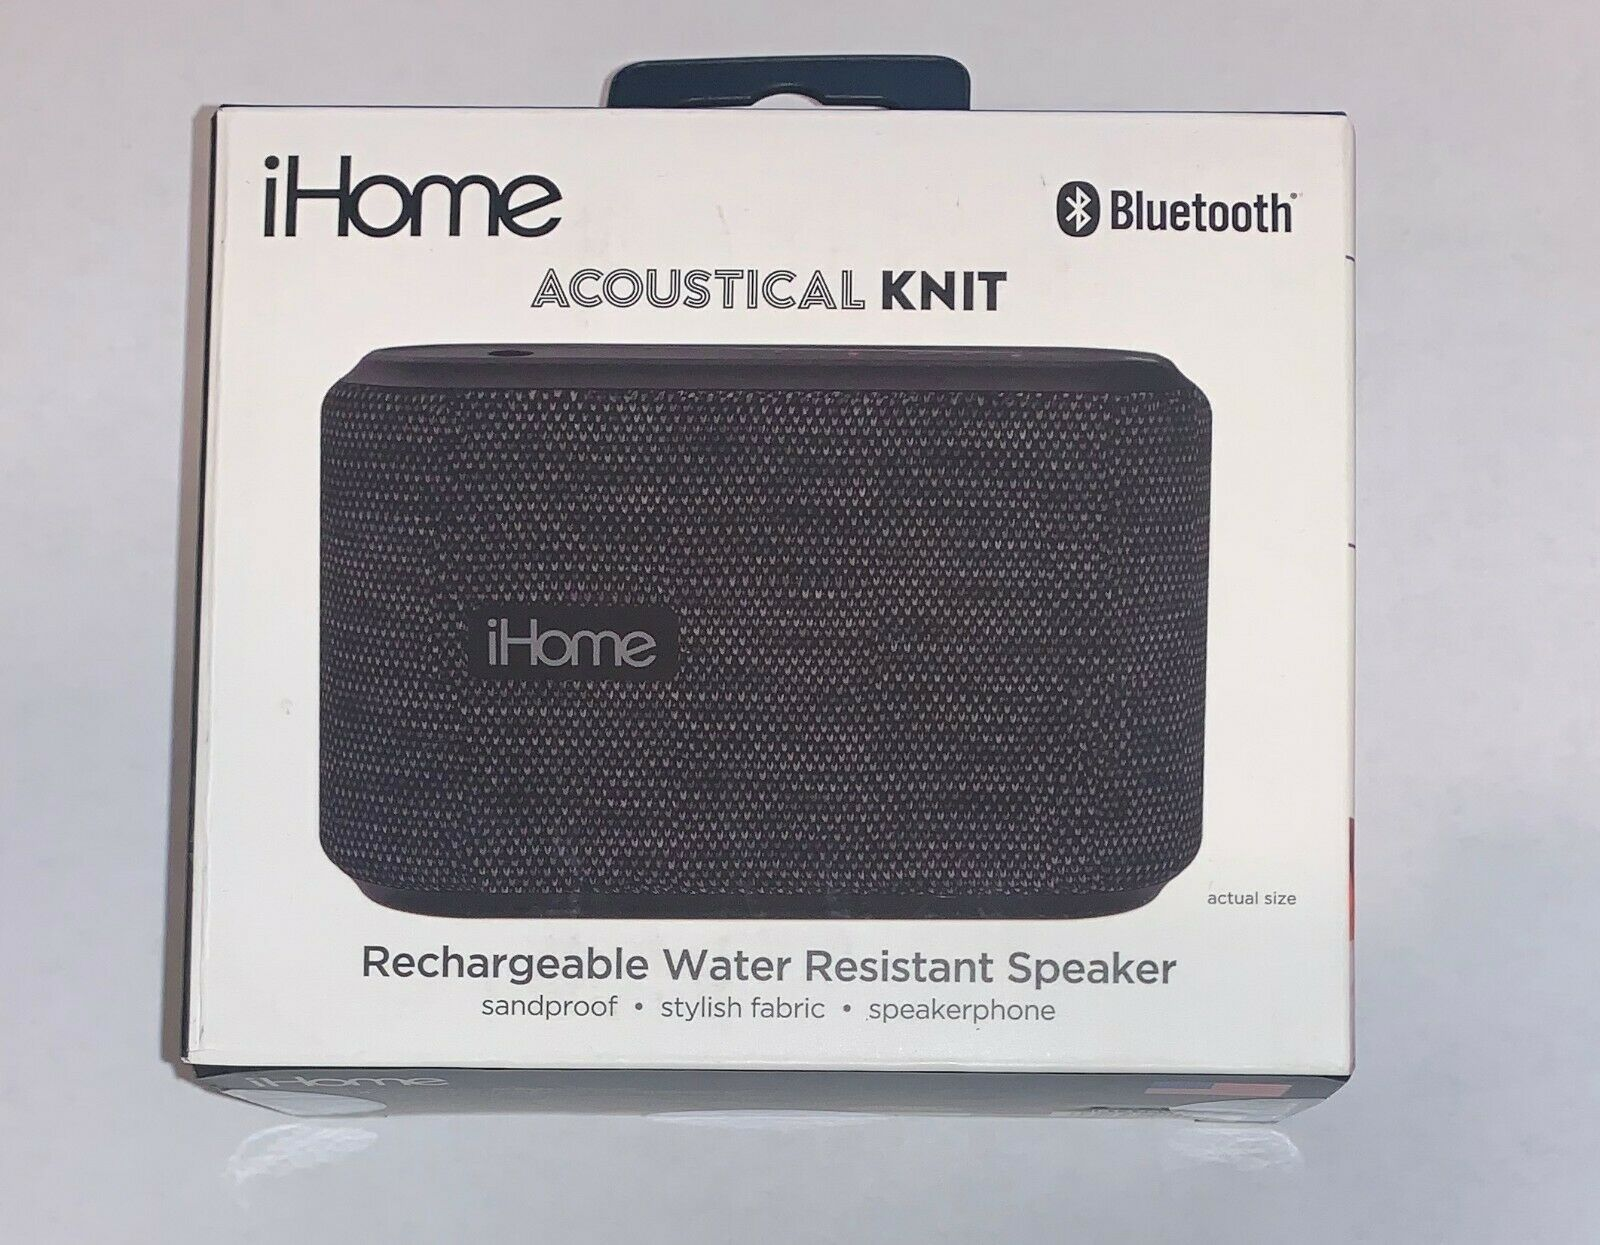 iHome Acoustical Knit Portable Rechargable Water Resistant B